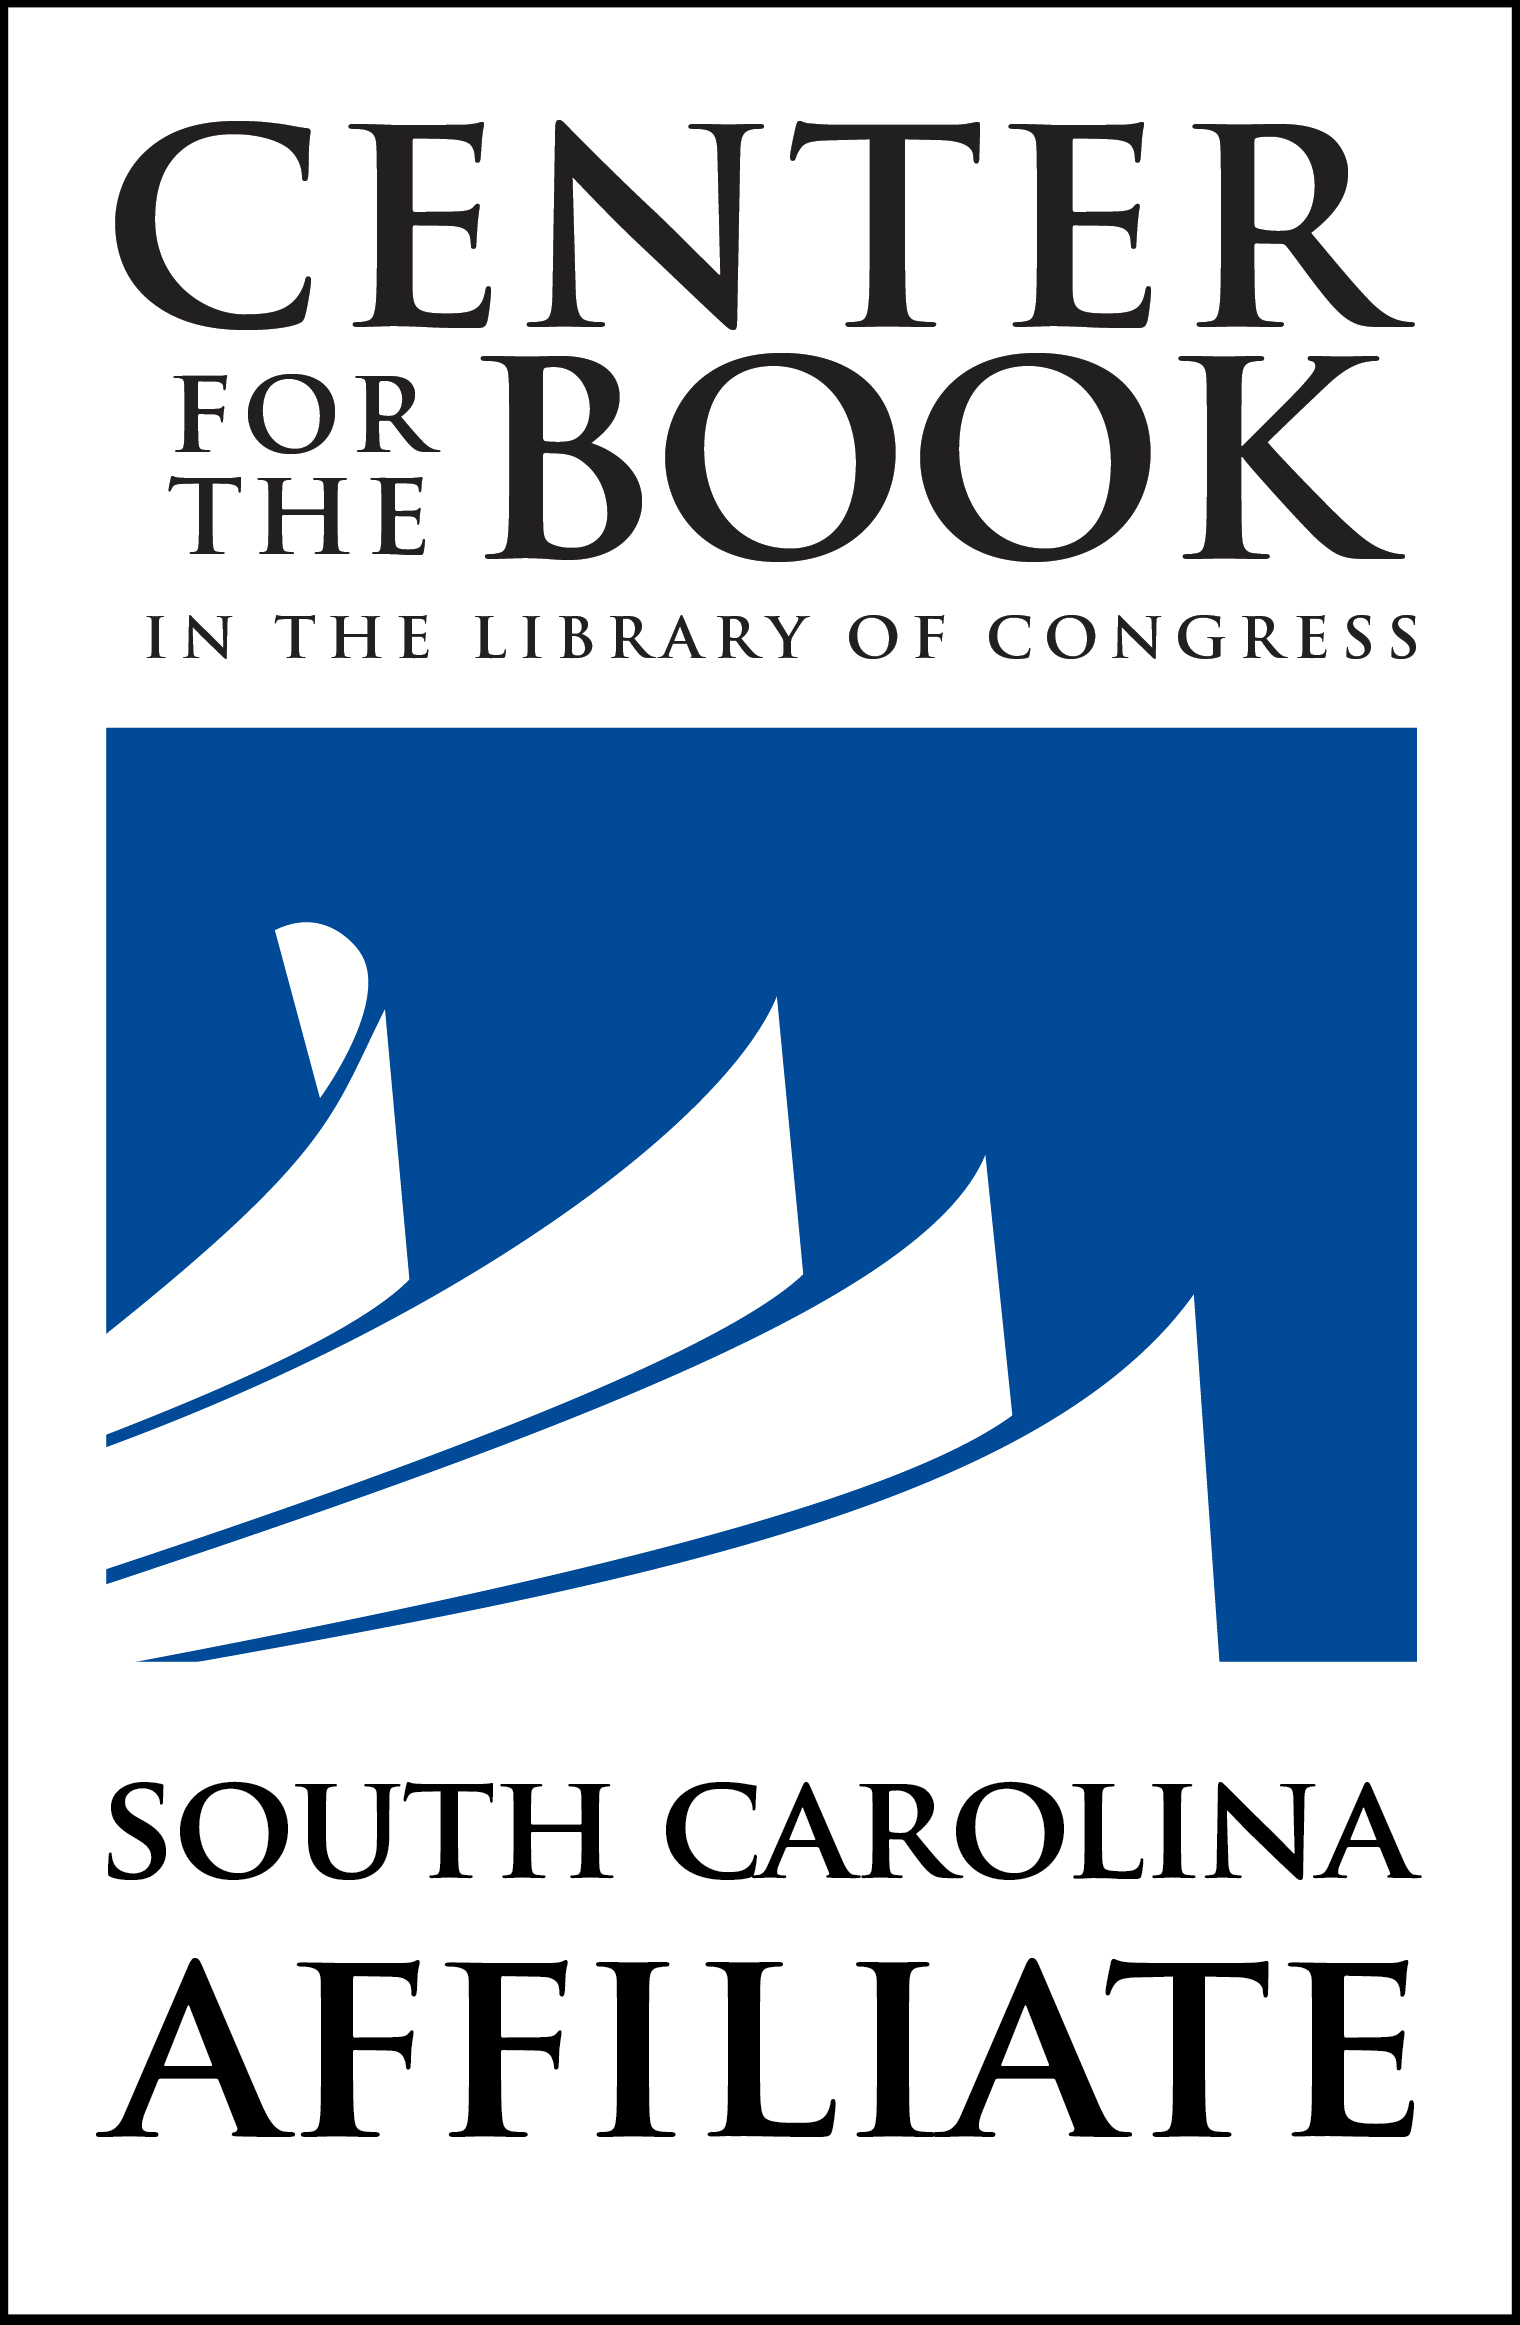 SC Center for the Book Affiliate logo